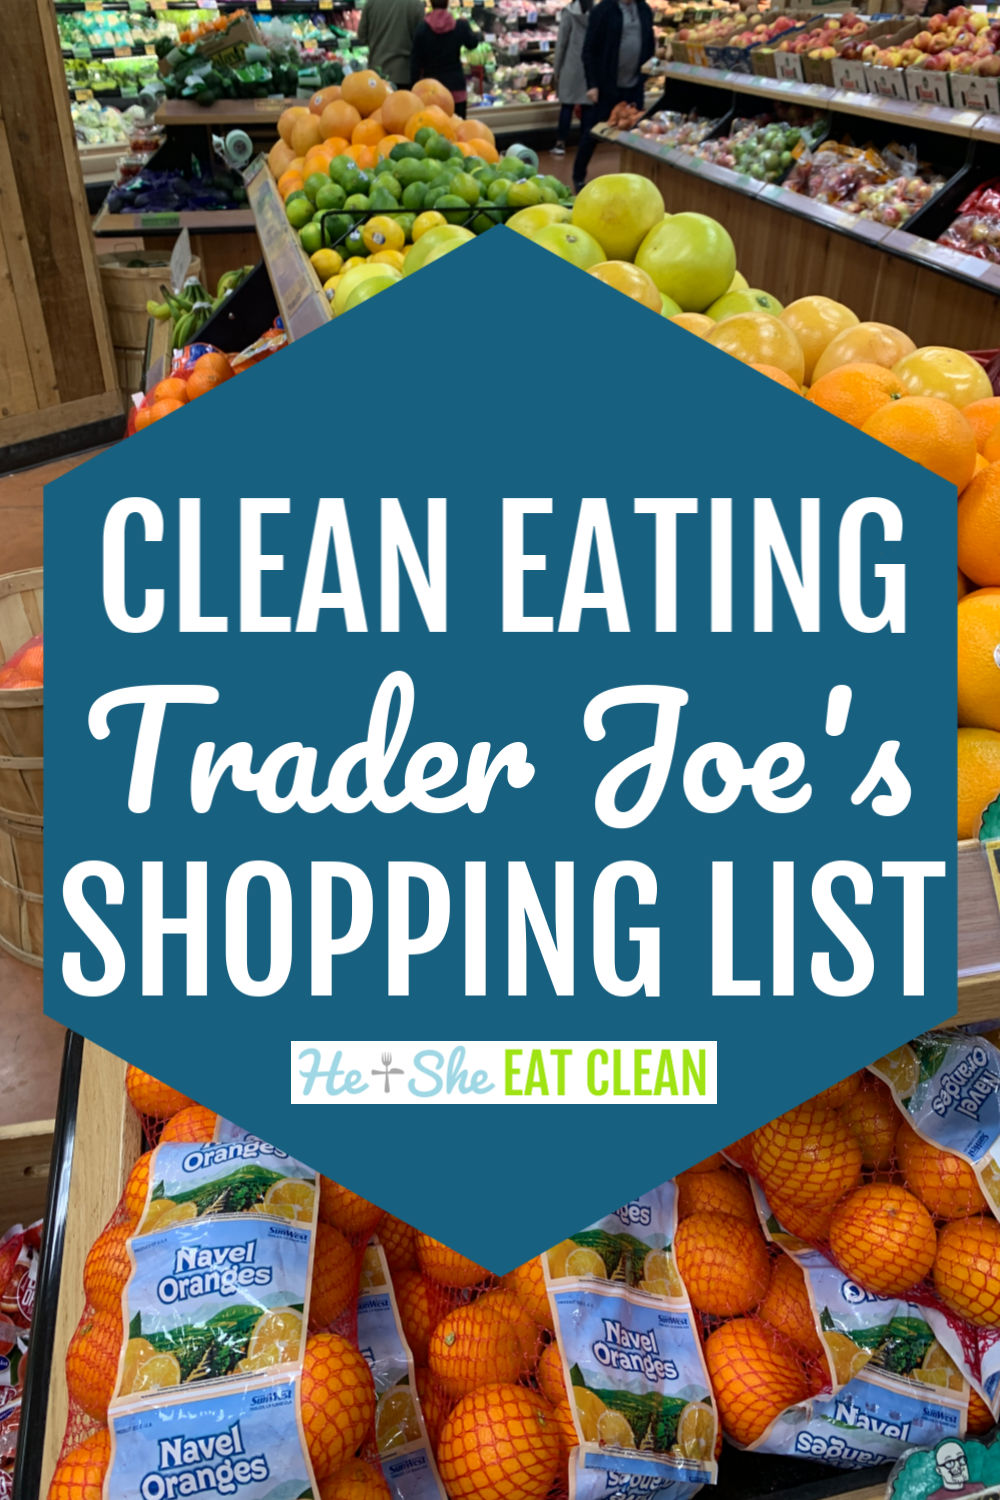 produce aisle in the background and text overlay reads Clean Eating Trader Joe's Shopping List